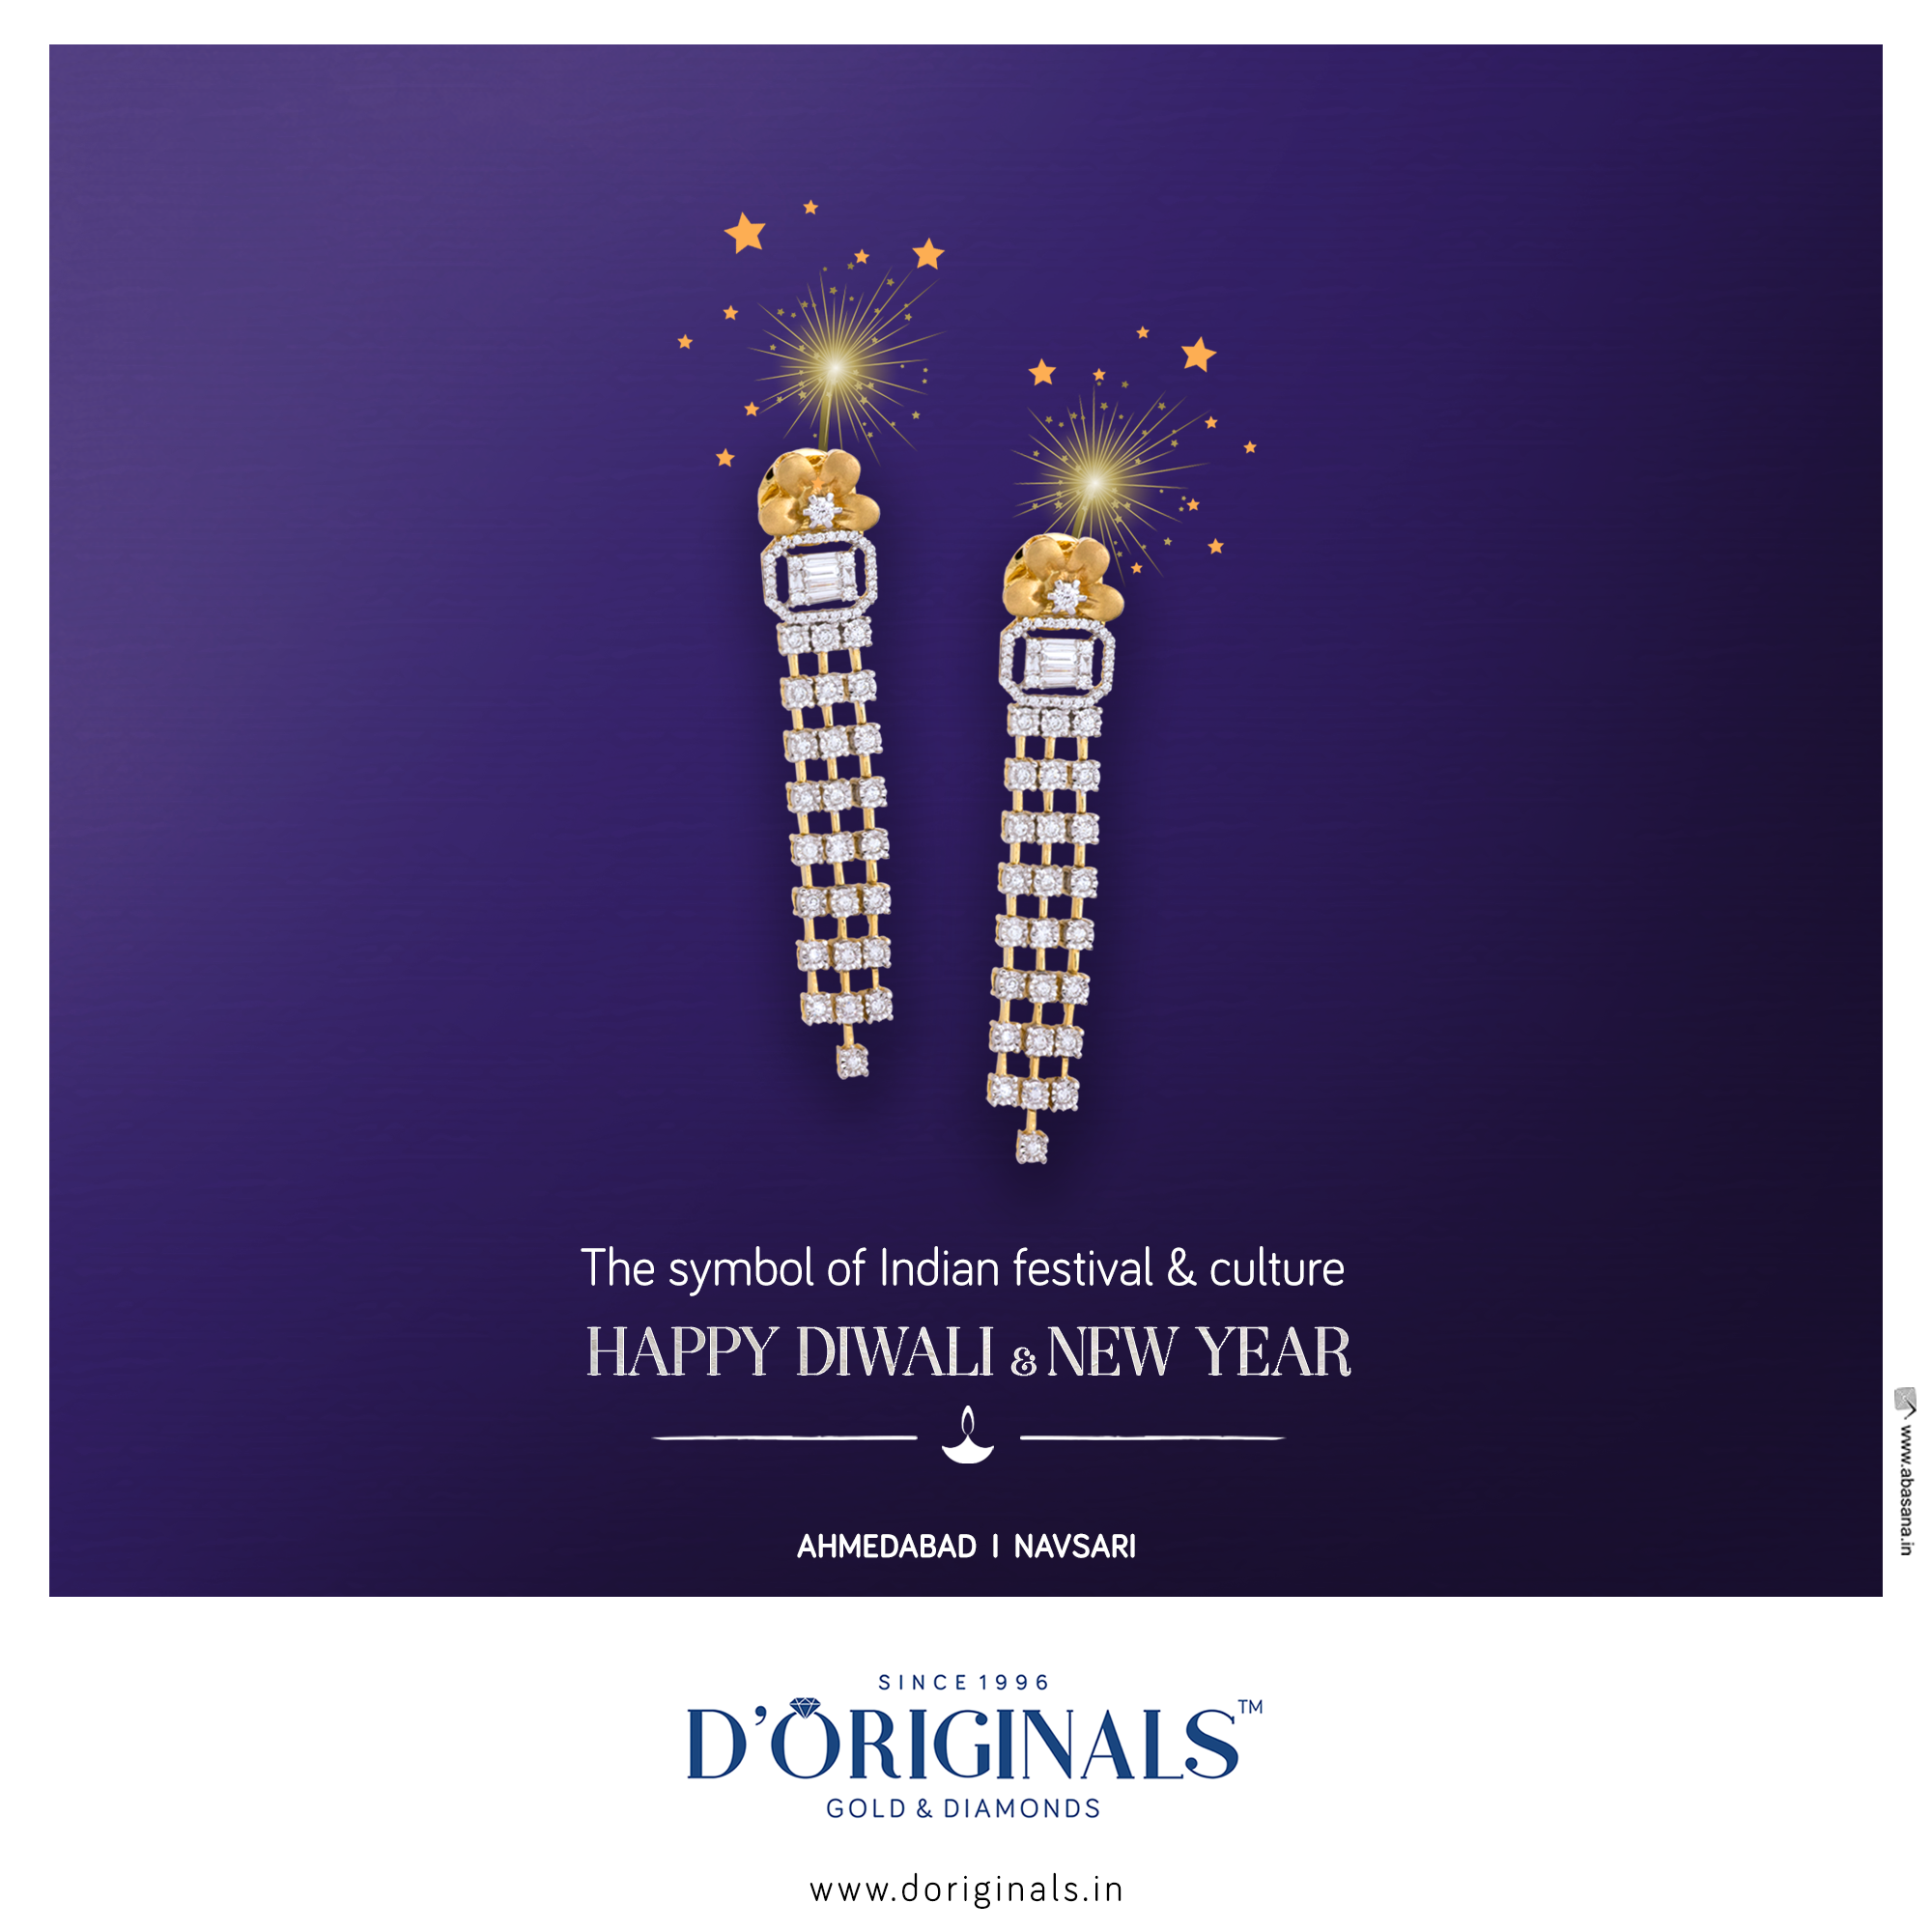 D'ORIGINALS FAMILY WISHES YOU HAPPY DIWALI AND NEW YEAR